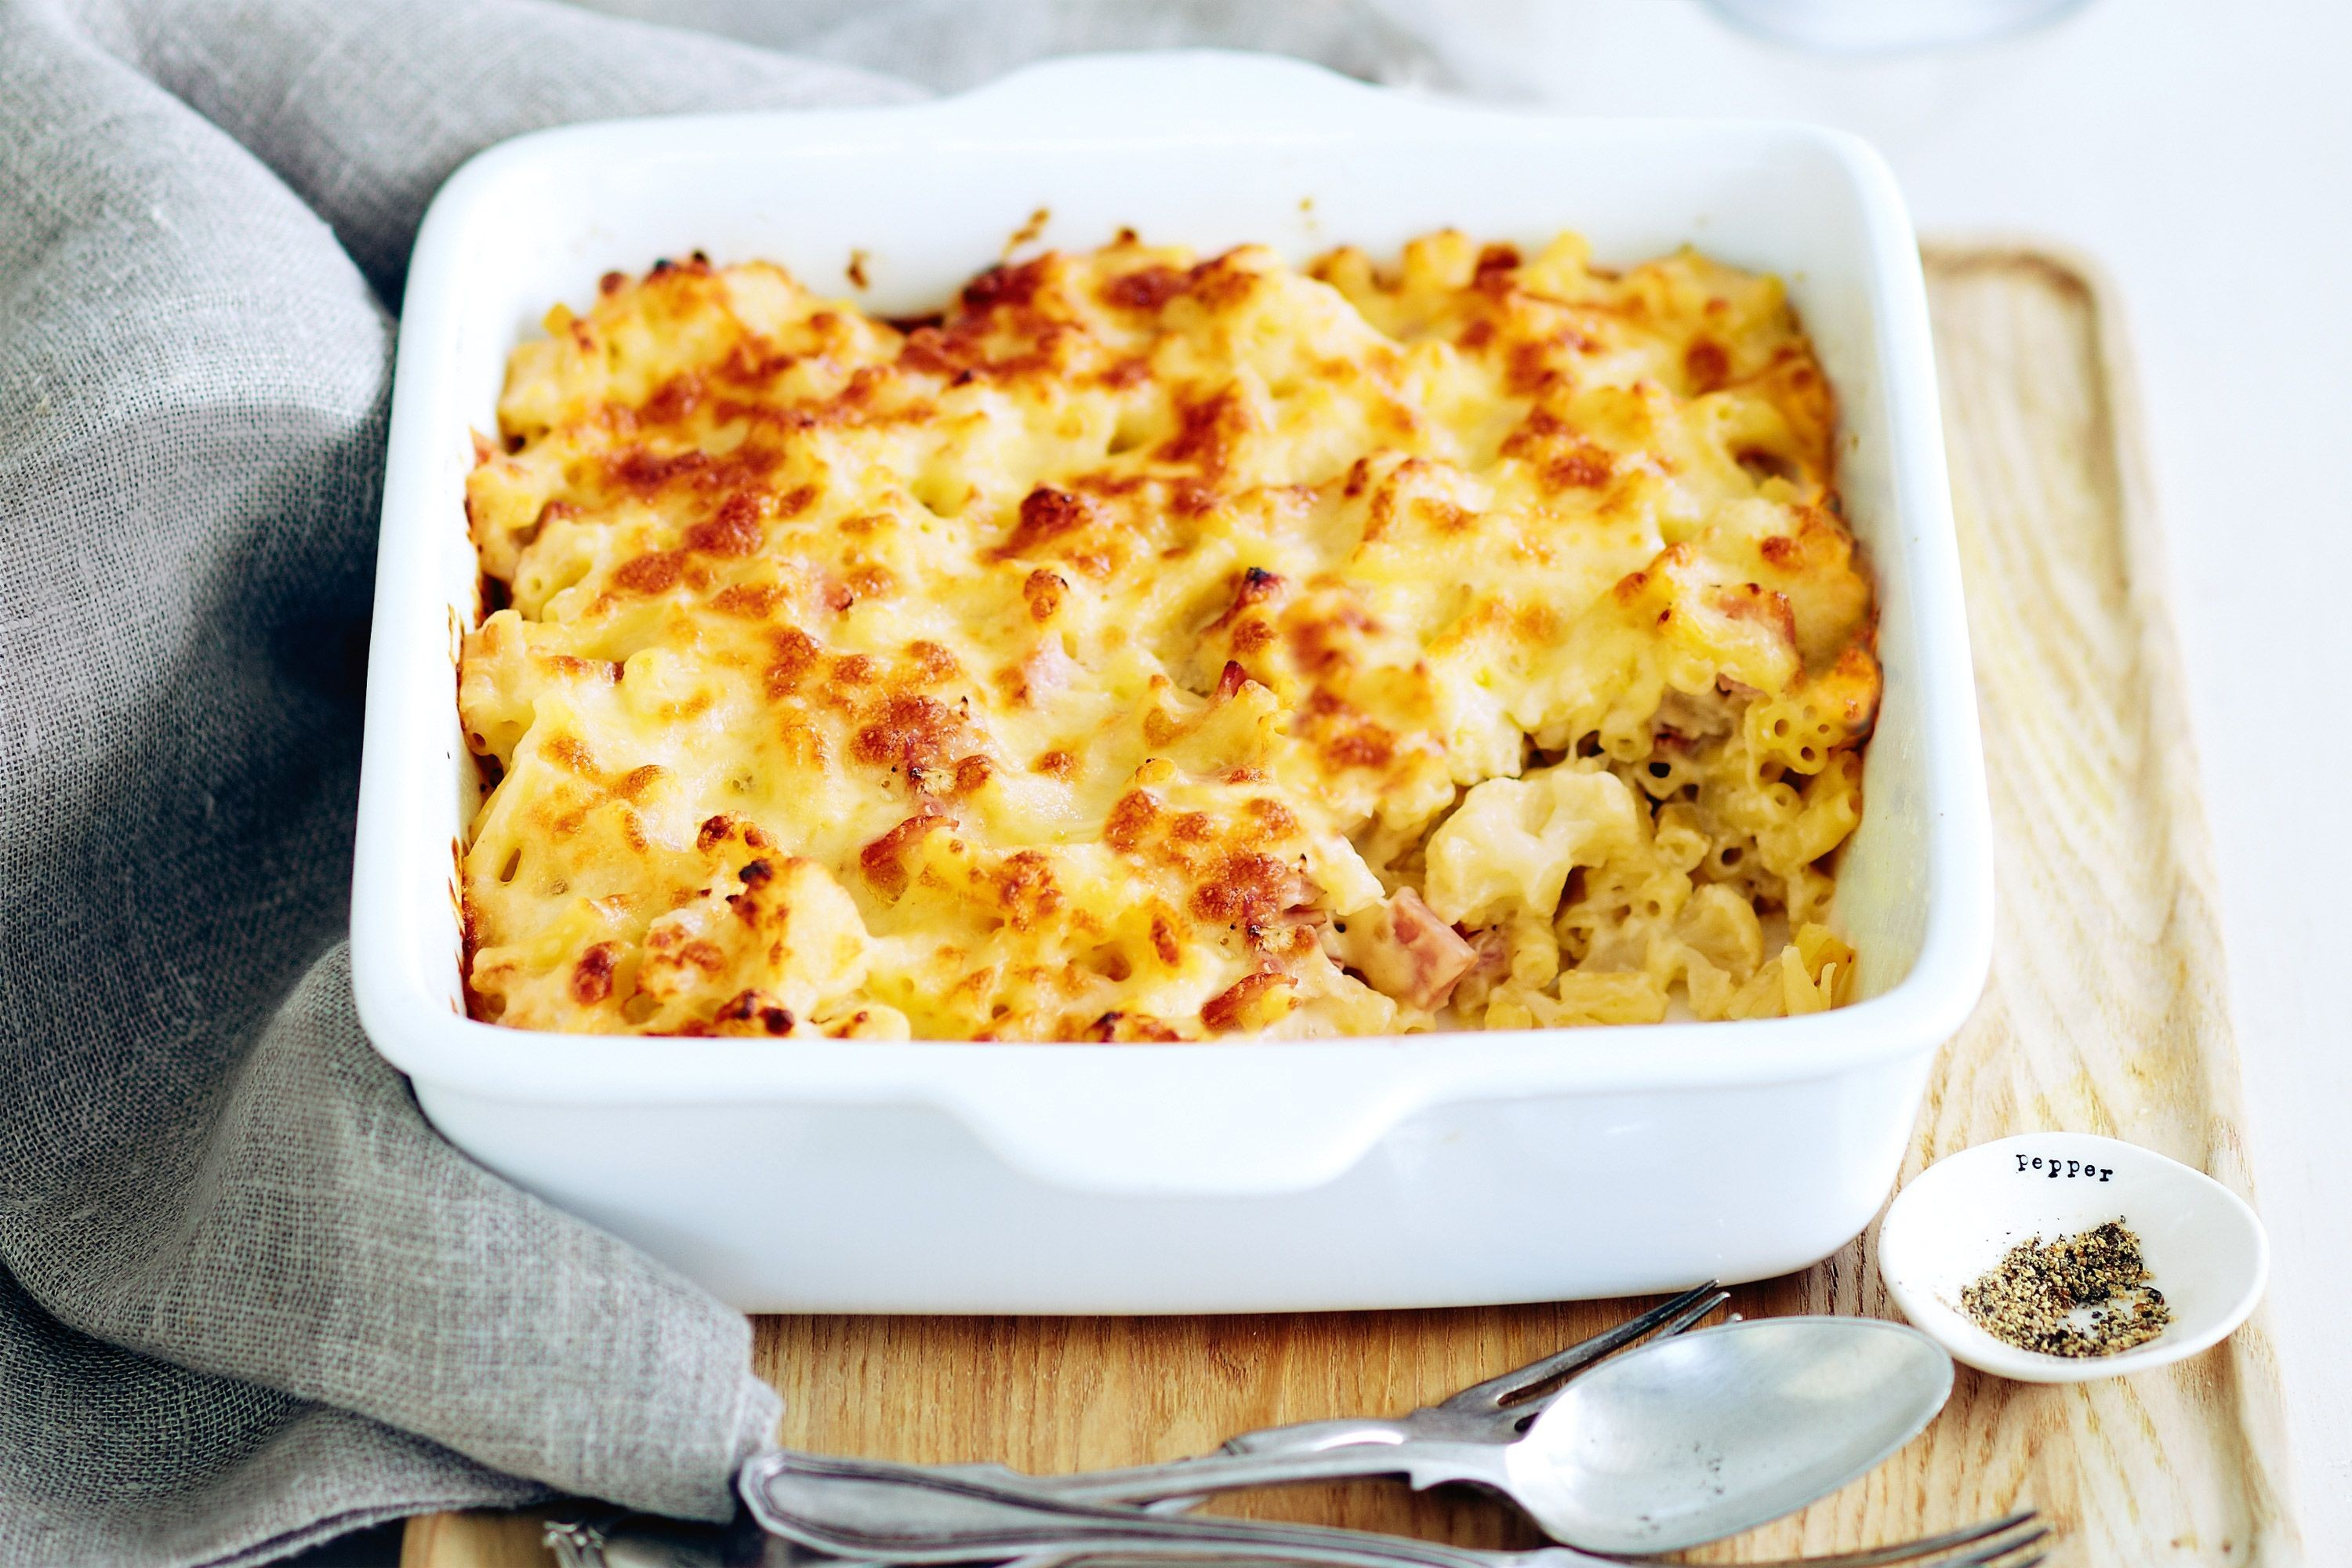 cauliflower macaroni and cheese, recipe, gordon ramsay, chef, video, food